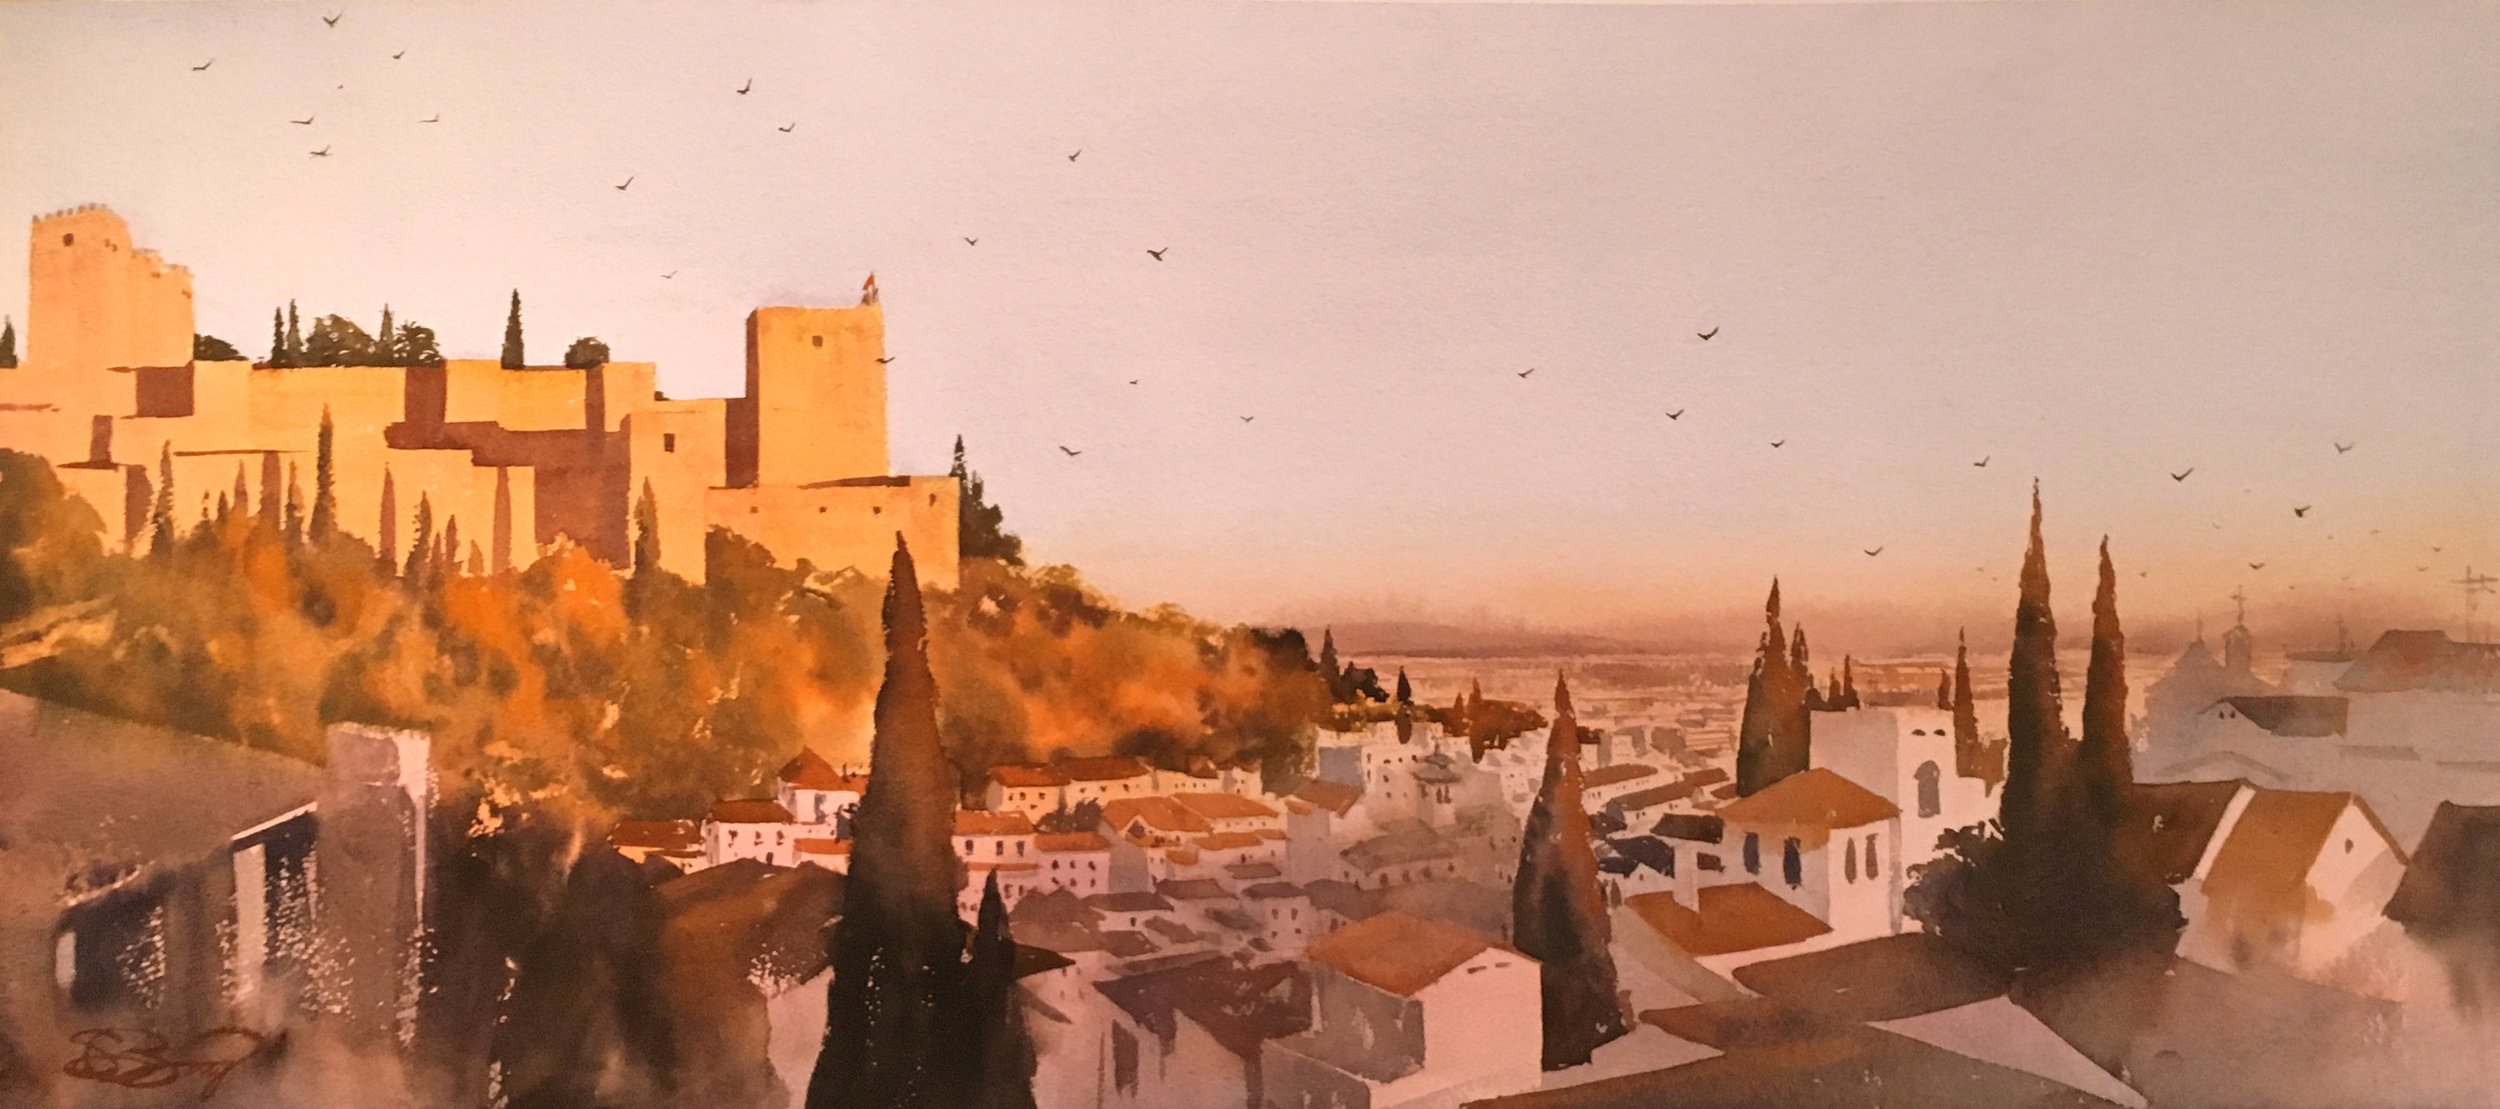 """""""The Bells Are Ringing"""". The Alhambra at sunset in Granada, Spain. 40"""" x 18"""""""